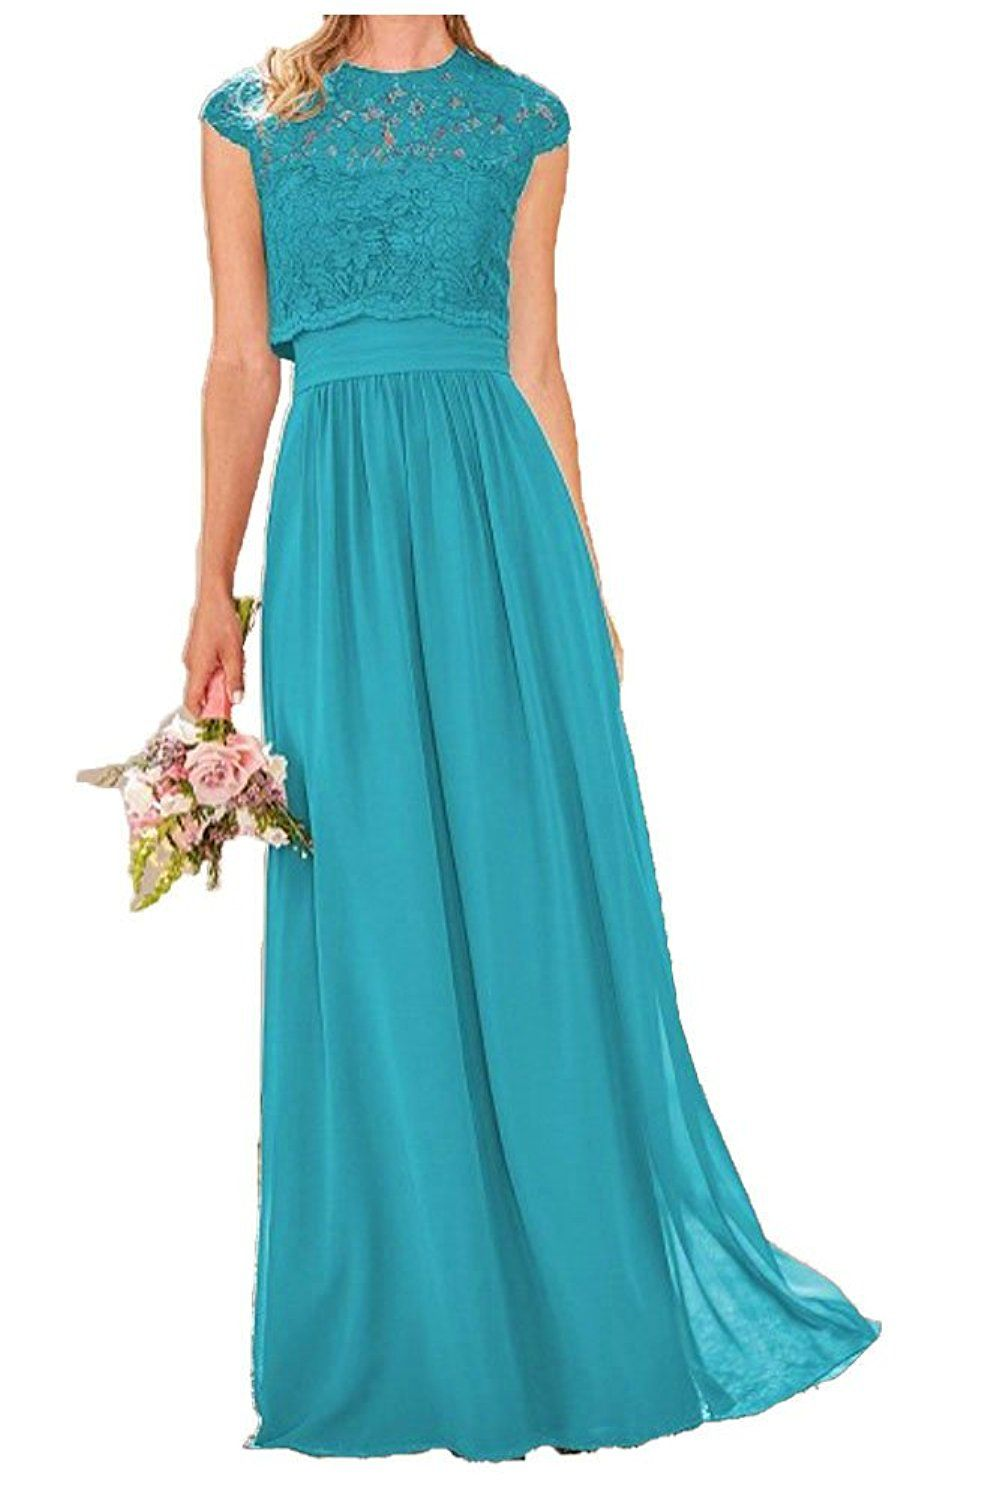 Fanmu sweetheart chiffon long prom bridesmaid dresses with lace top